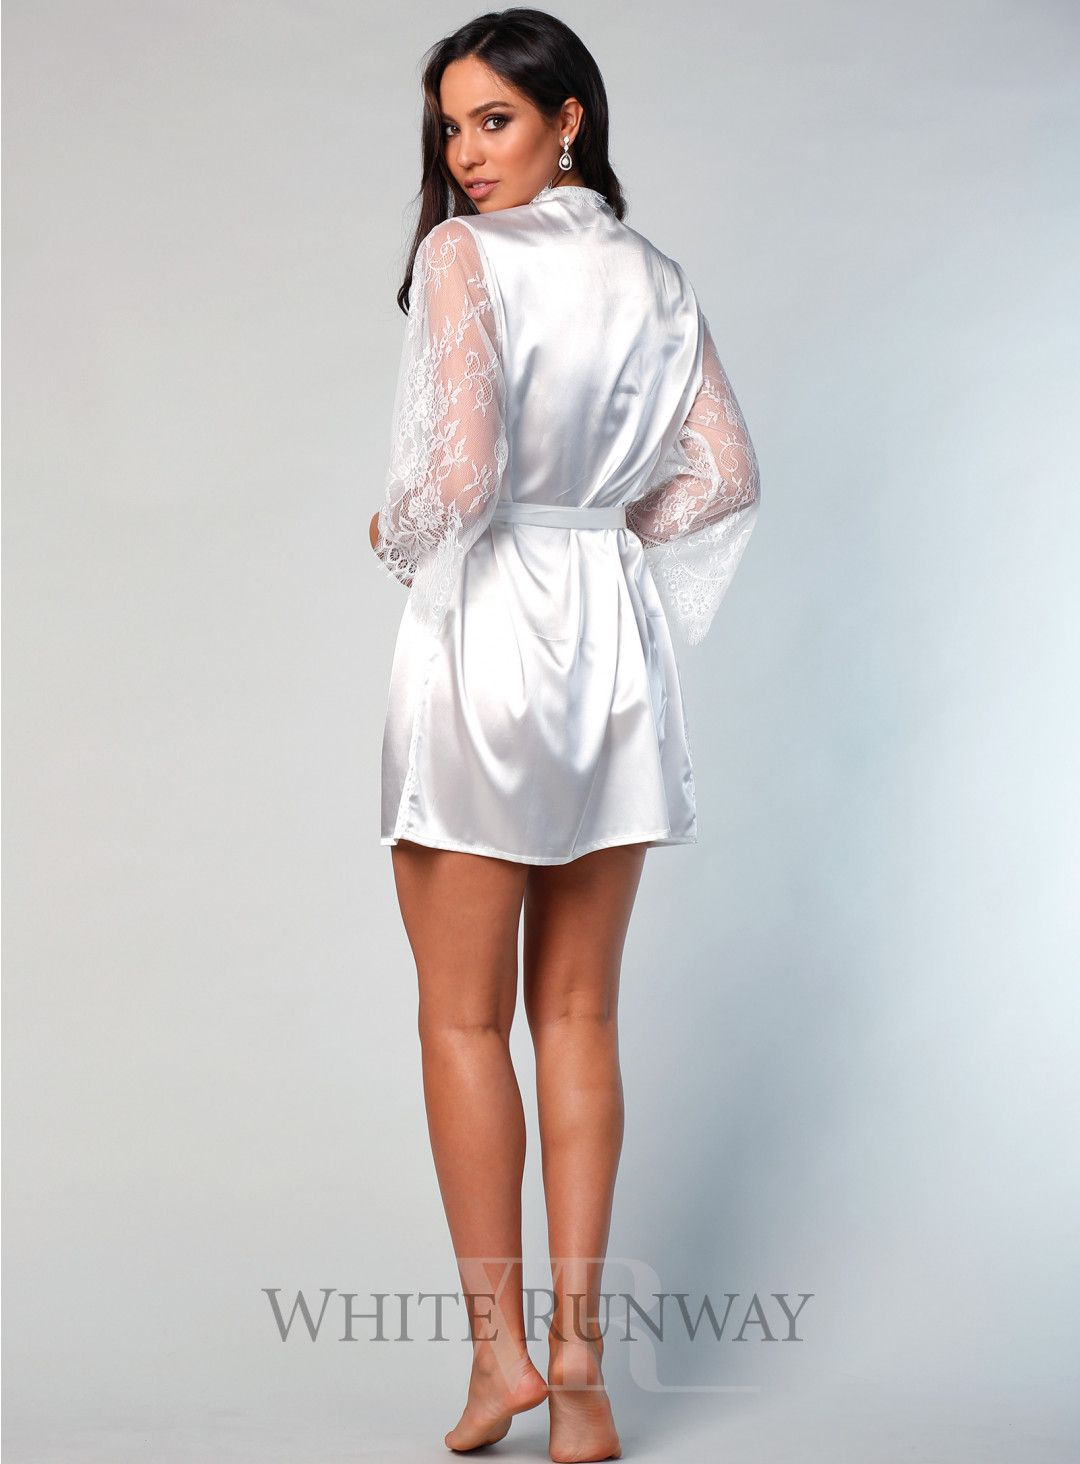 7459586ff8 Marsielle Satin Lace Robe. A beautiful mini robe by Samantha Rose. A satin  robe featuring lace sleeves and scallop eyelash lace trim on neckline and  front ...